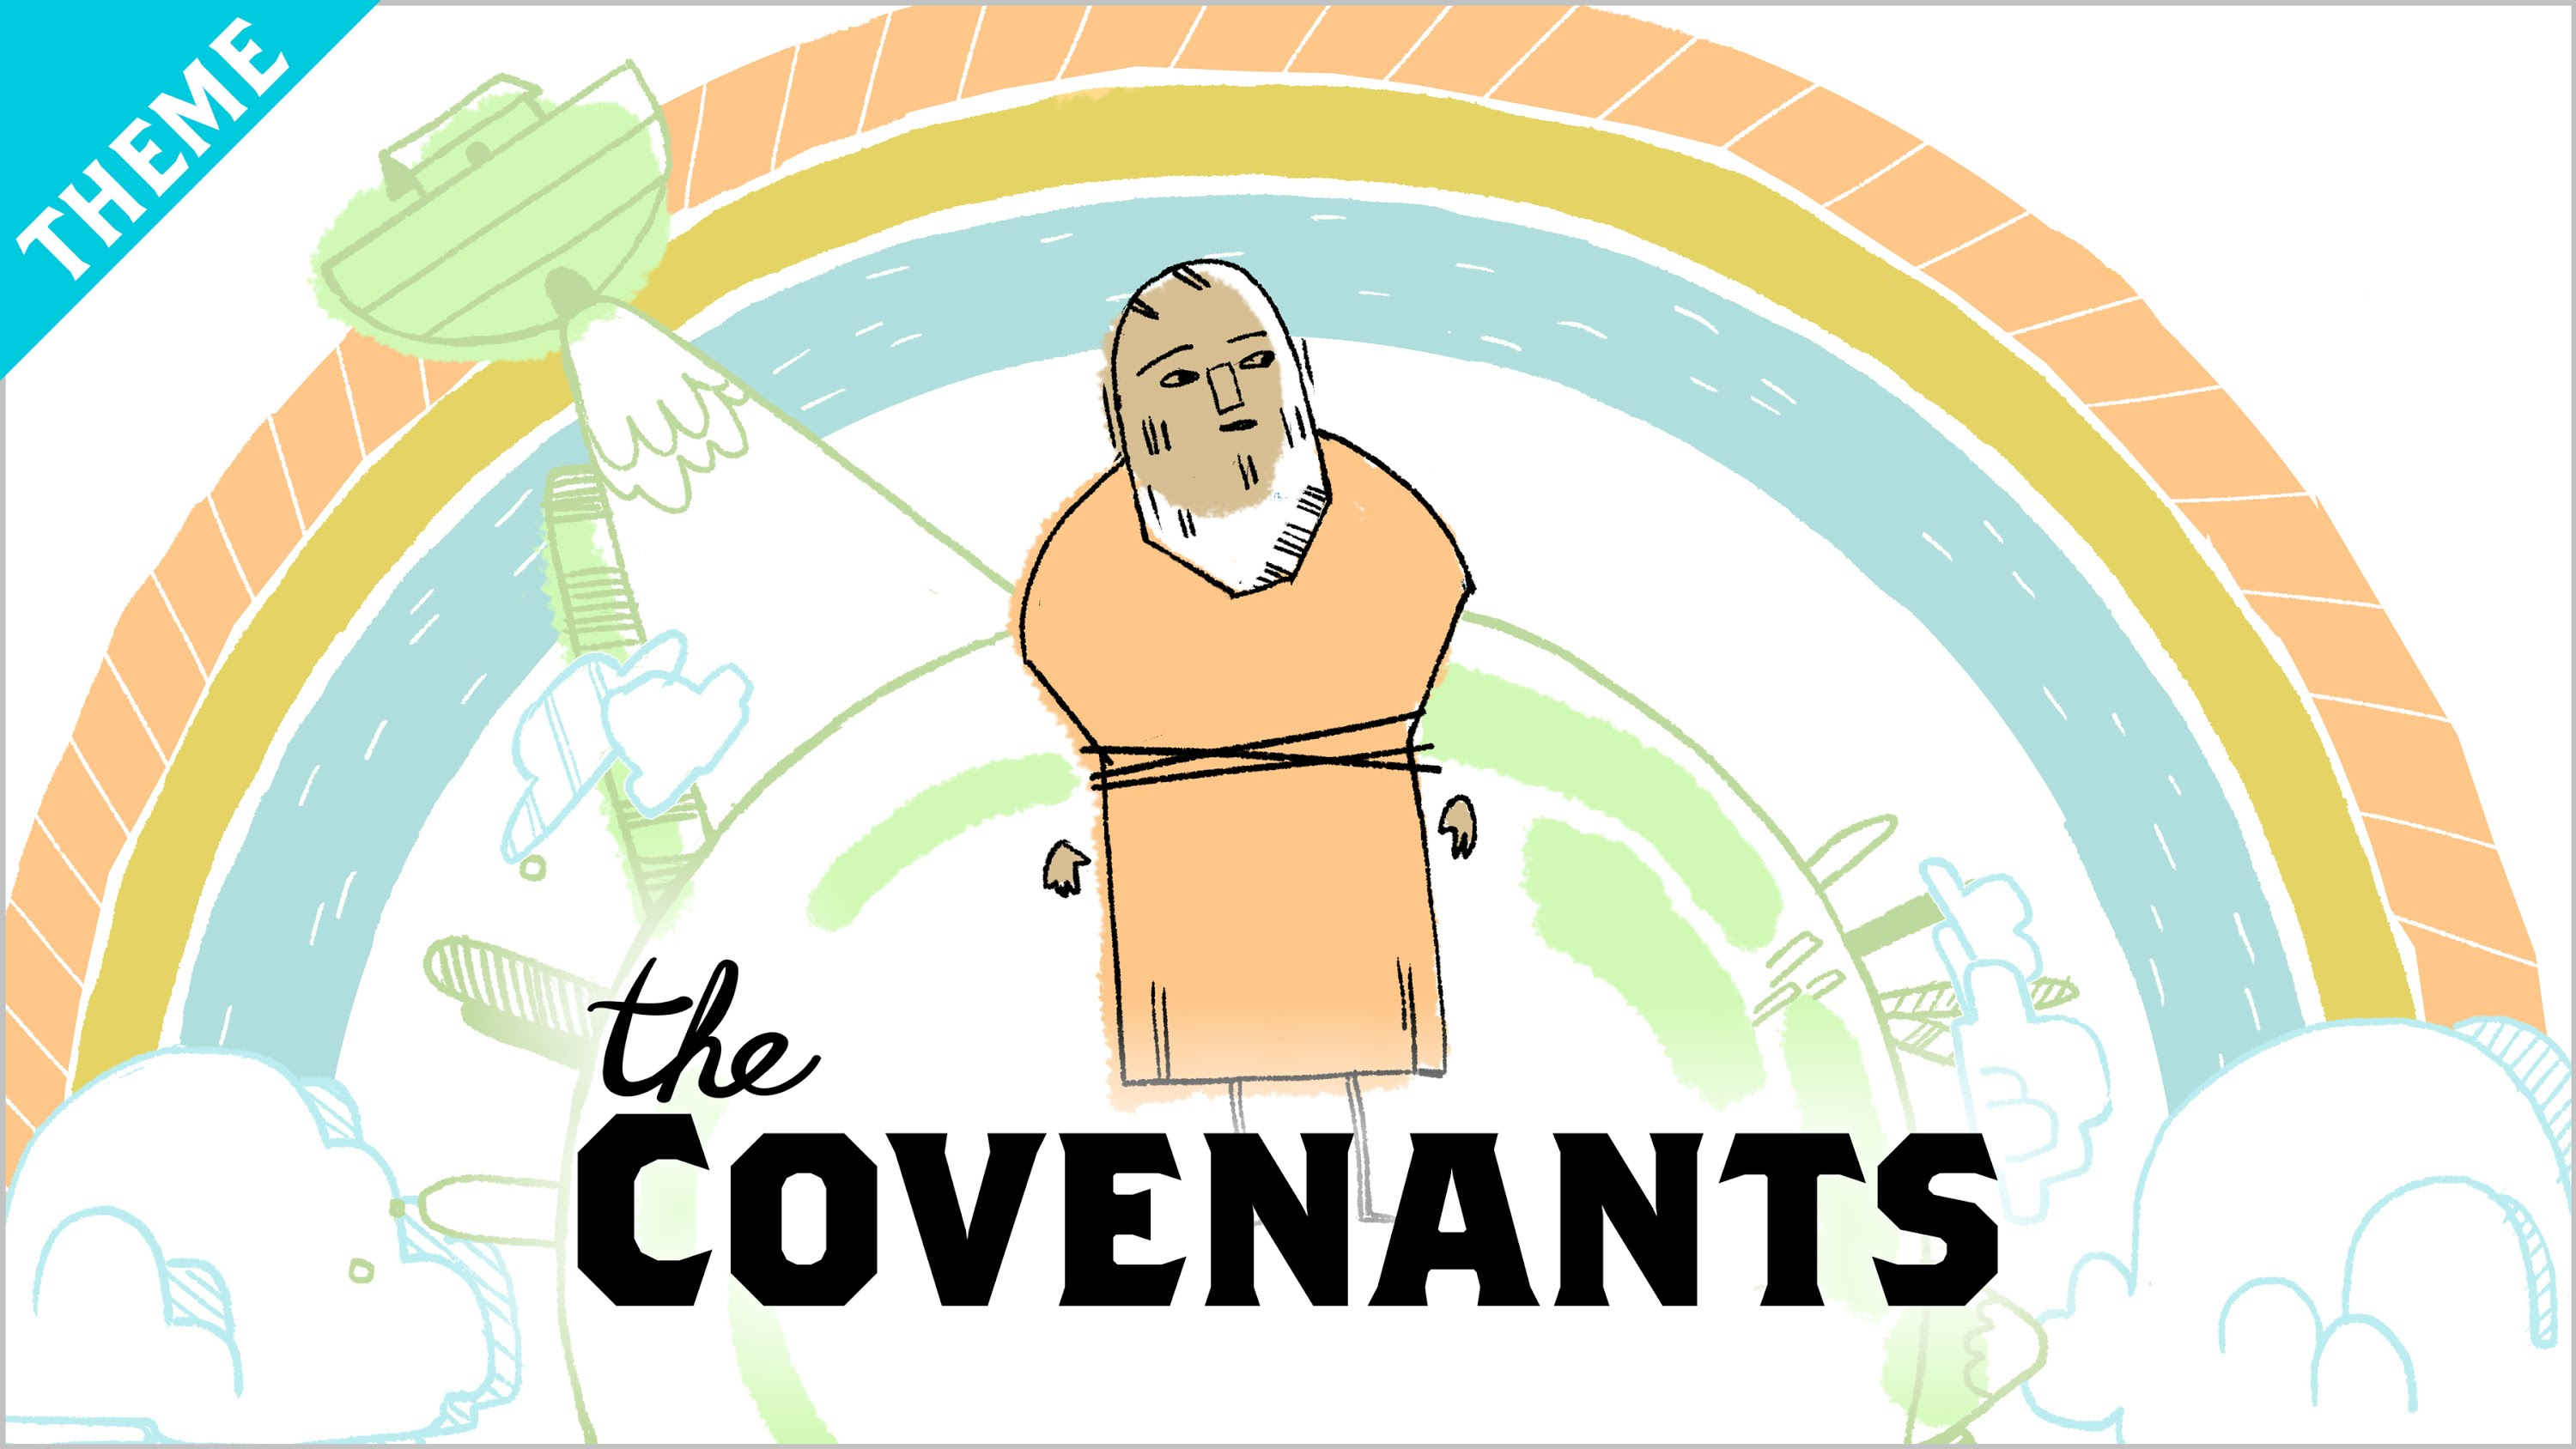 Biblical Themes: An Animated Explanation of 'The Covenants'